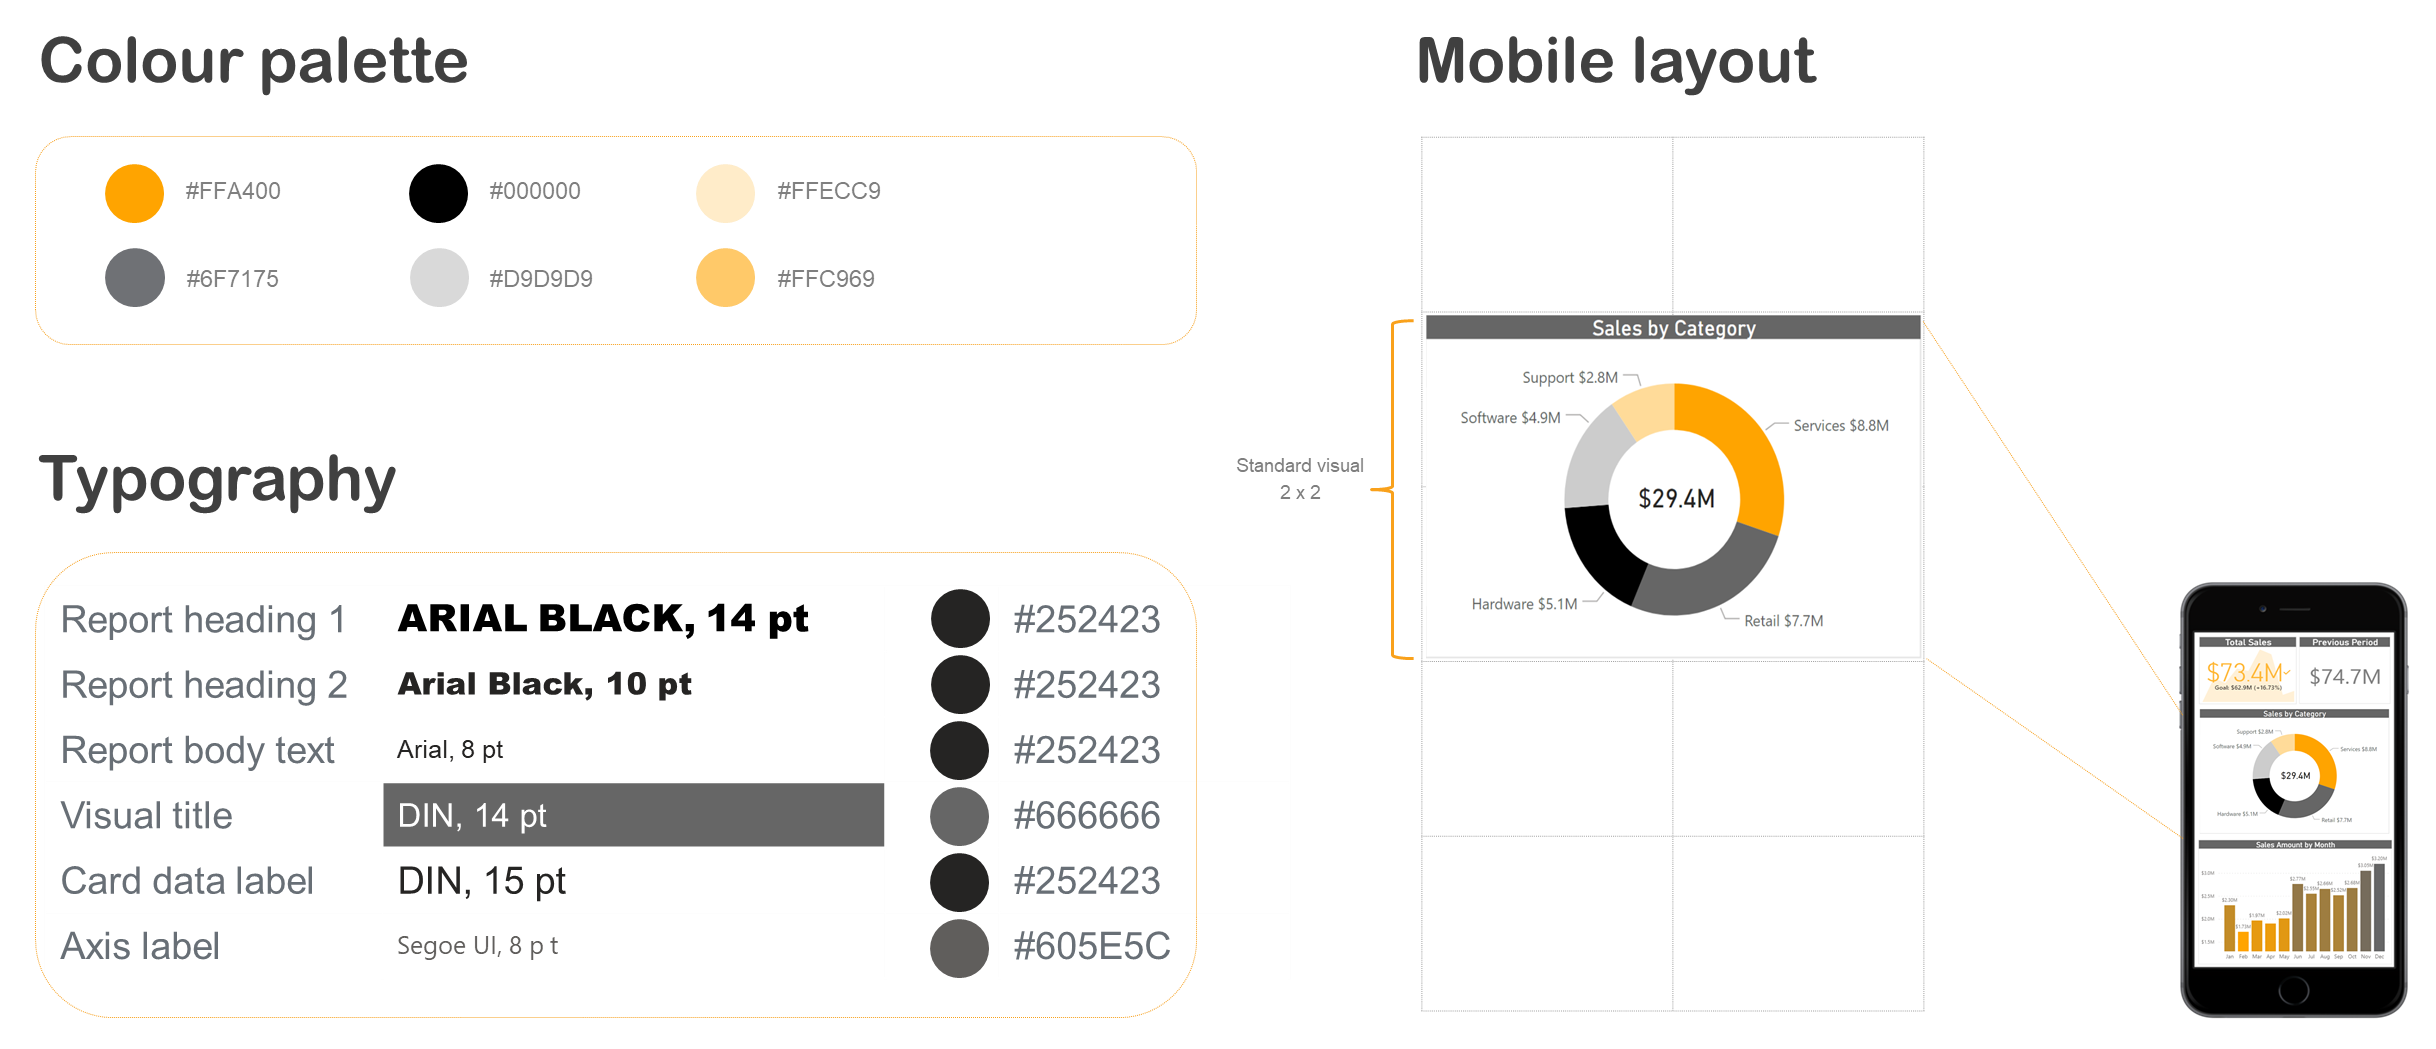 Image showcasing the colour palette, typography and mobile layout sections of a data visualisation standard